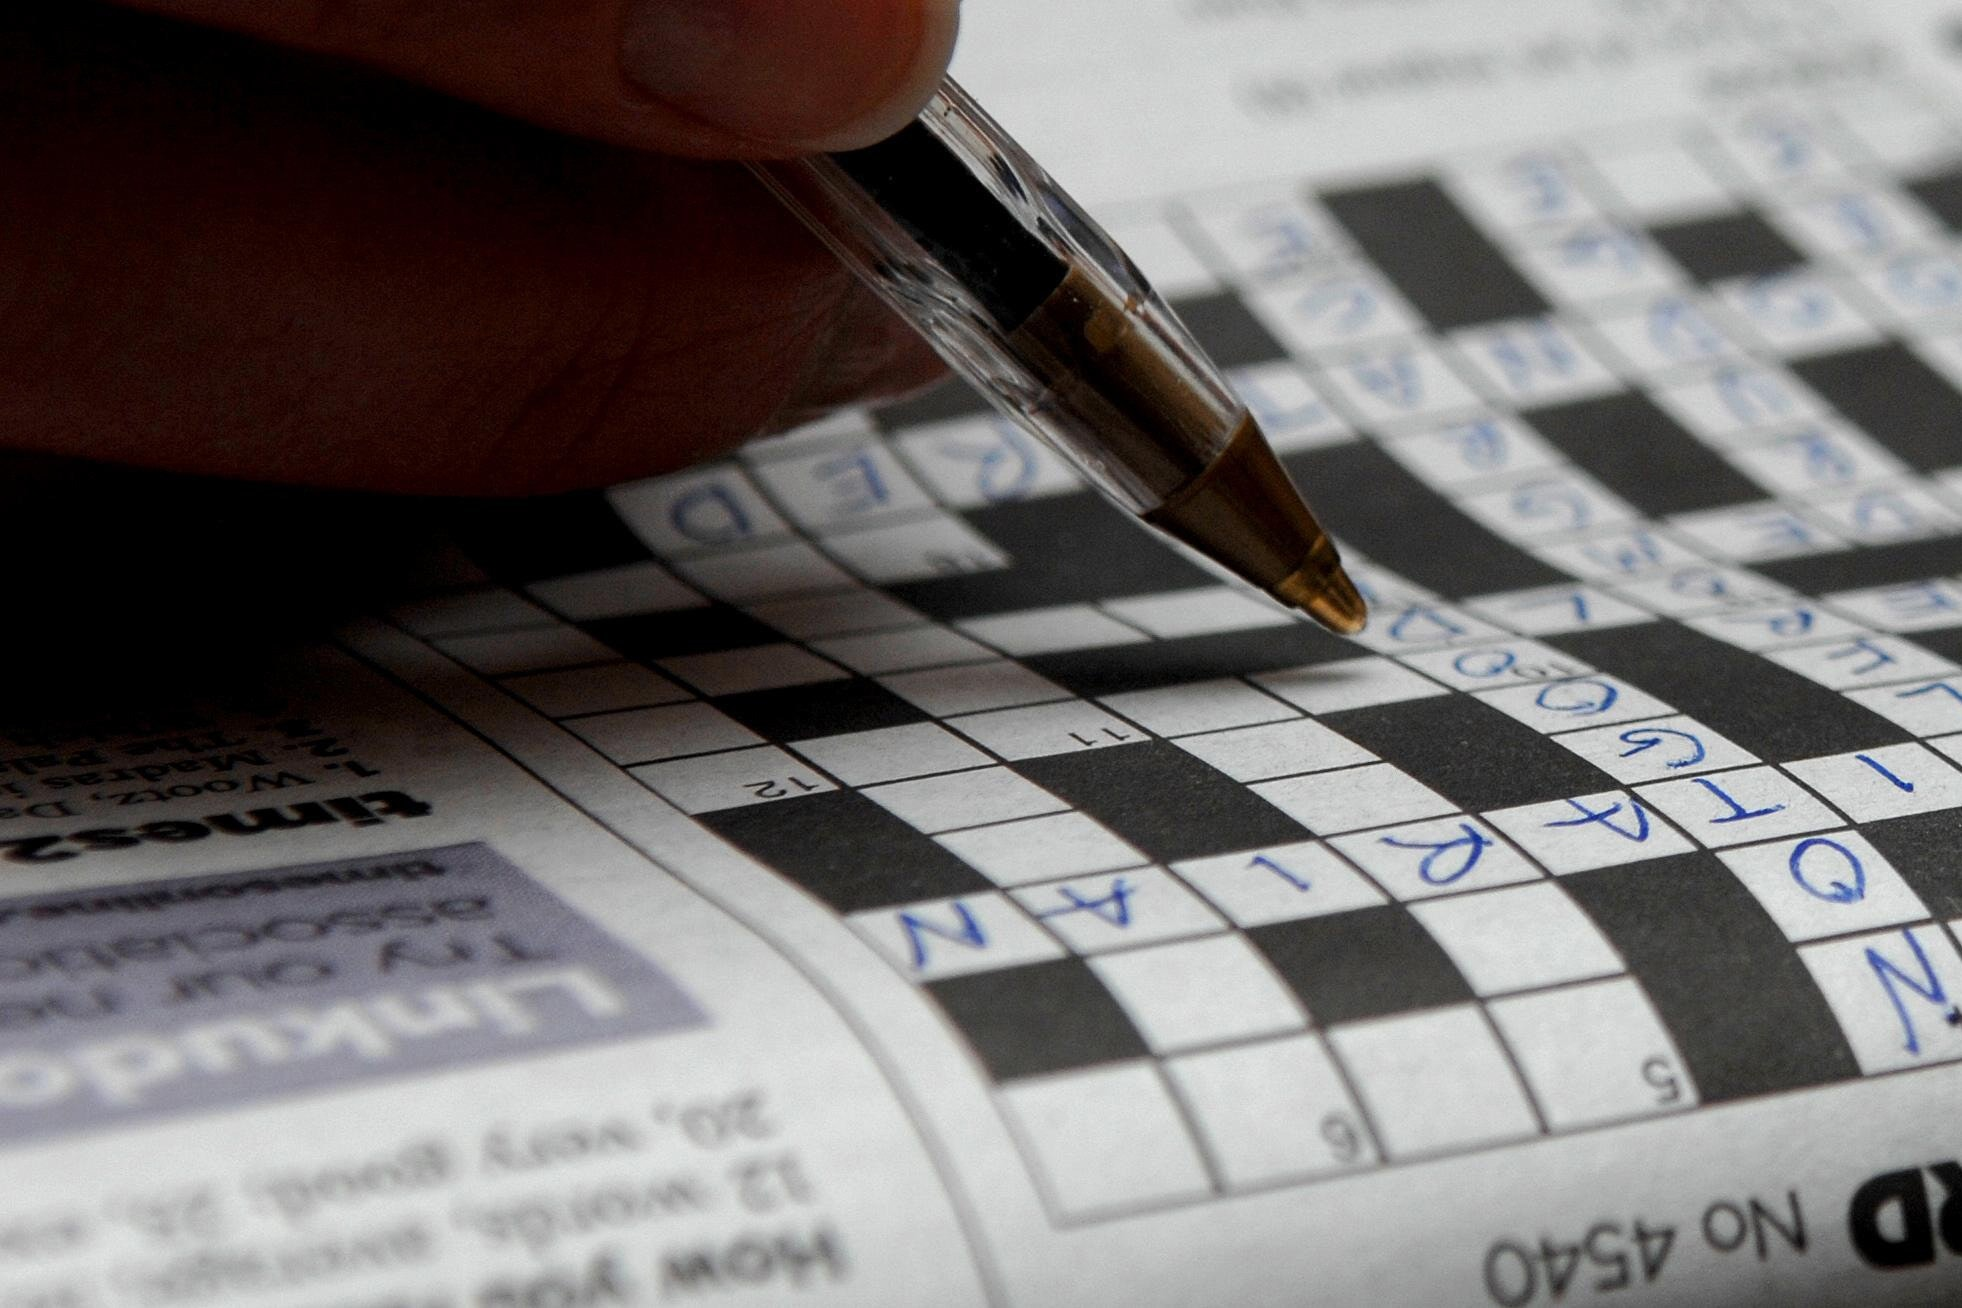 A study suggests older adults who regularly do word and number puzzles have sharper brains